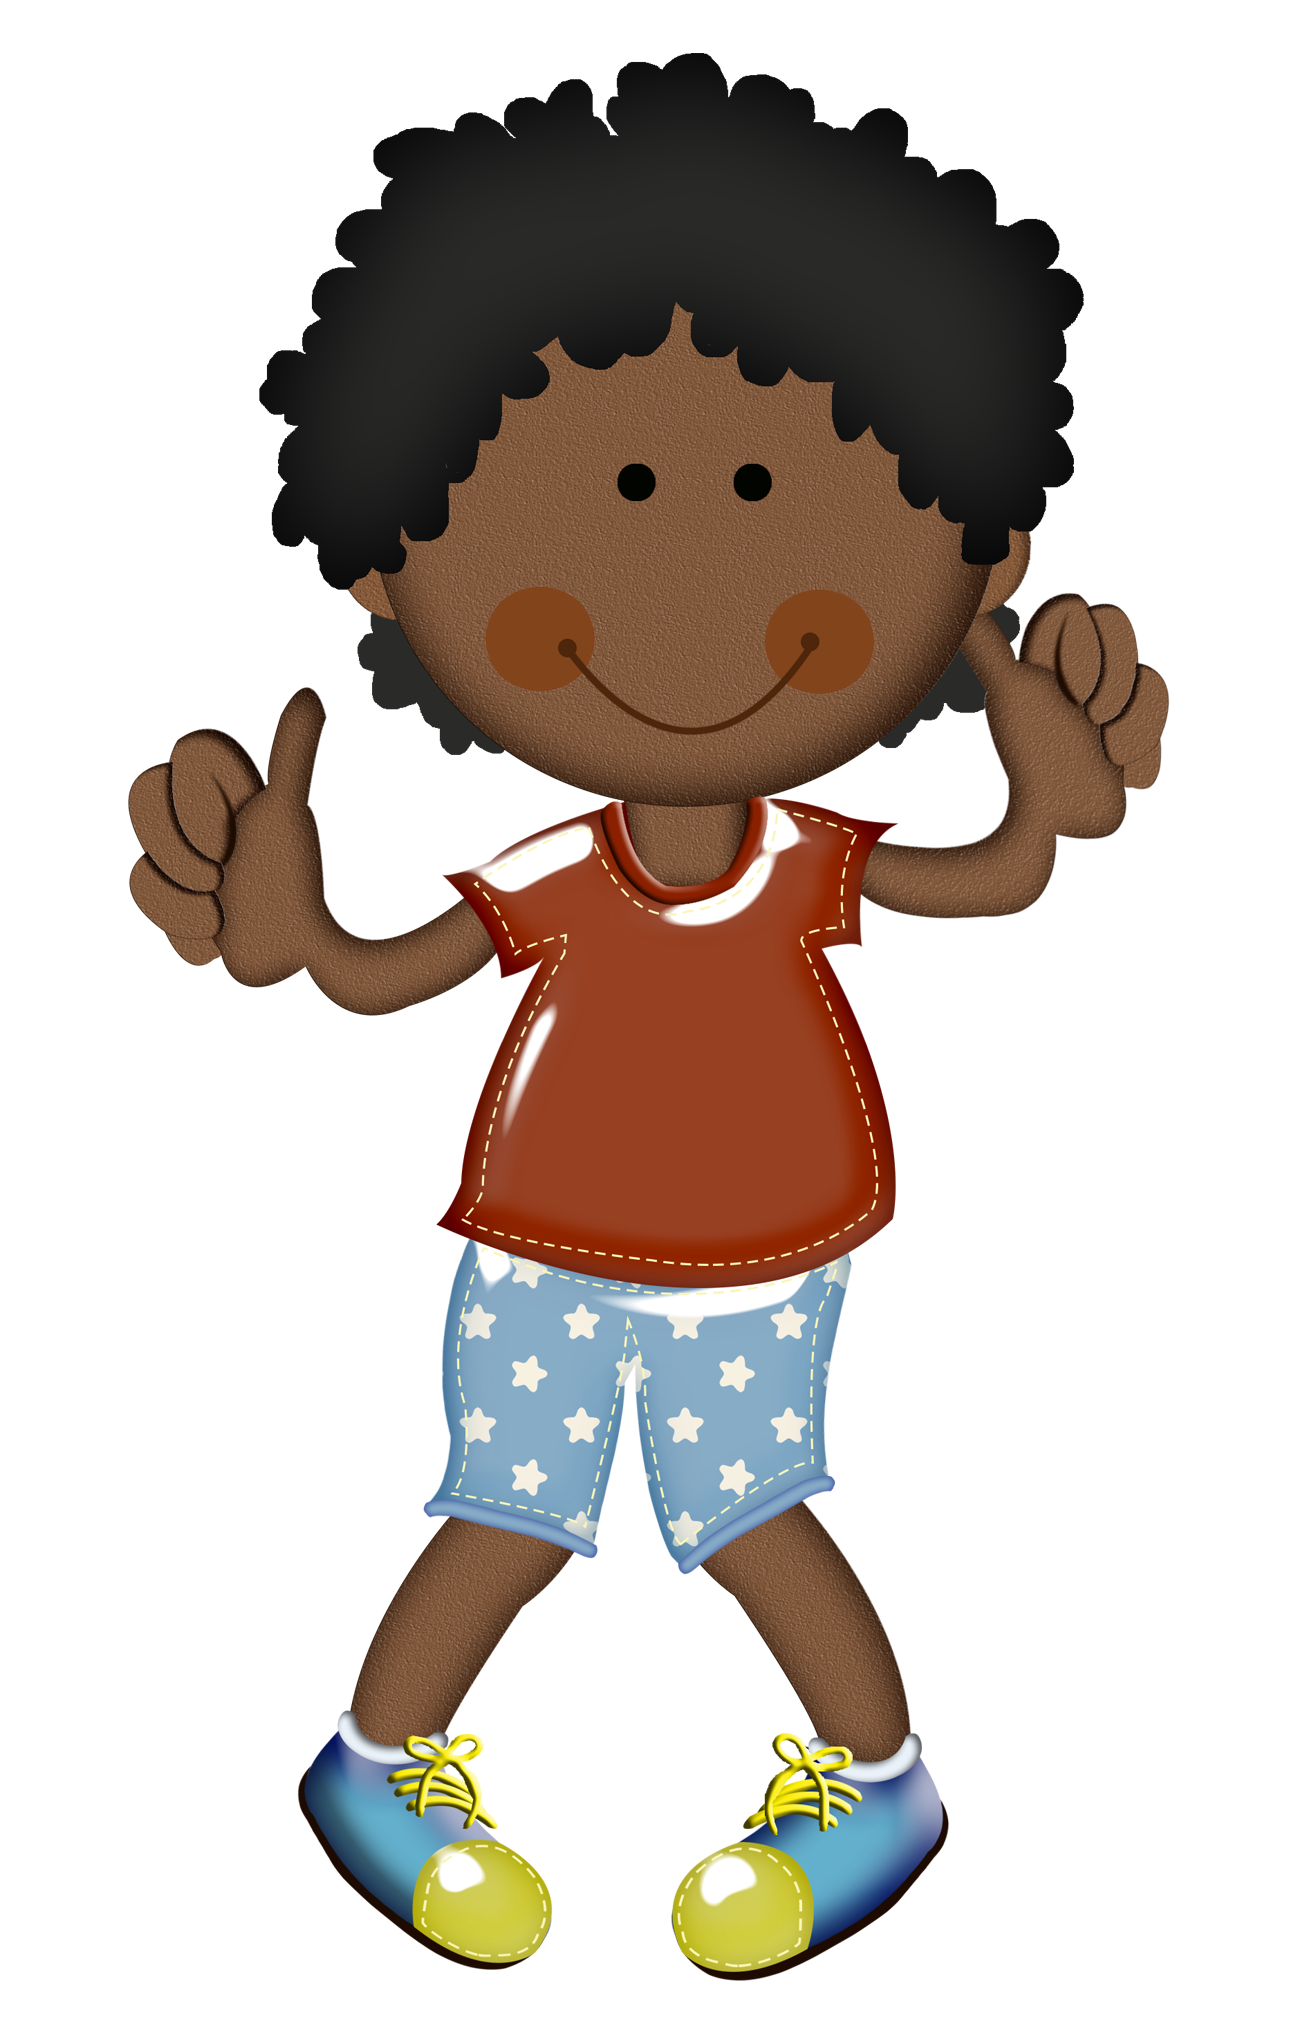 Meninos bonecos people pinterest. Infant clipart red haired boy